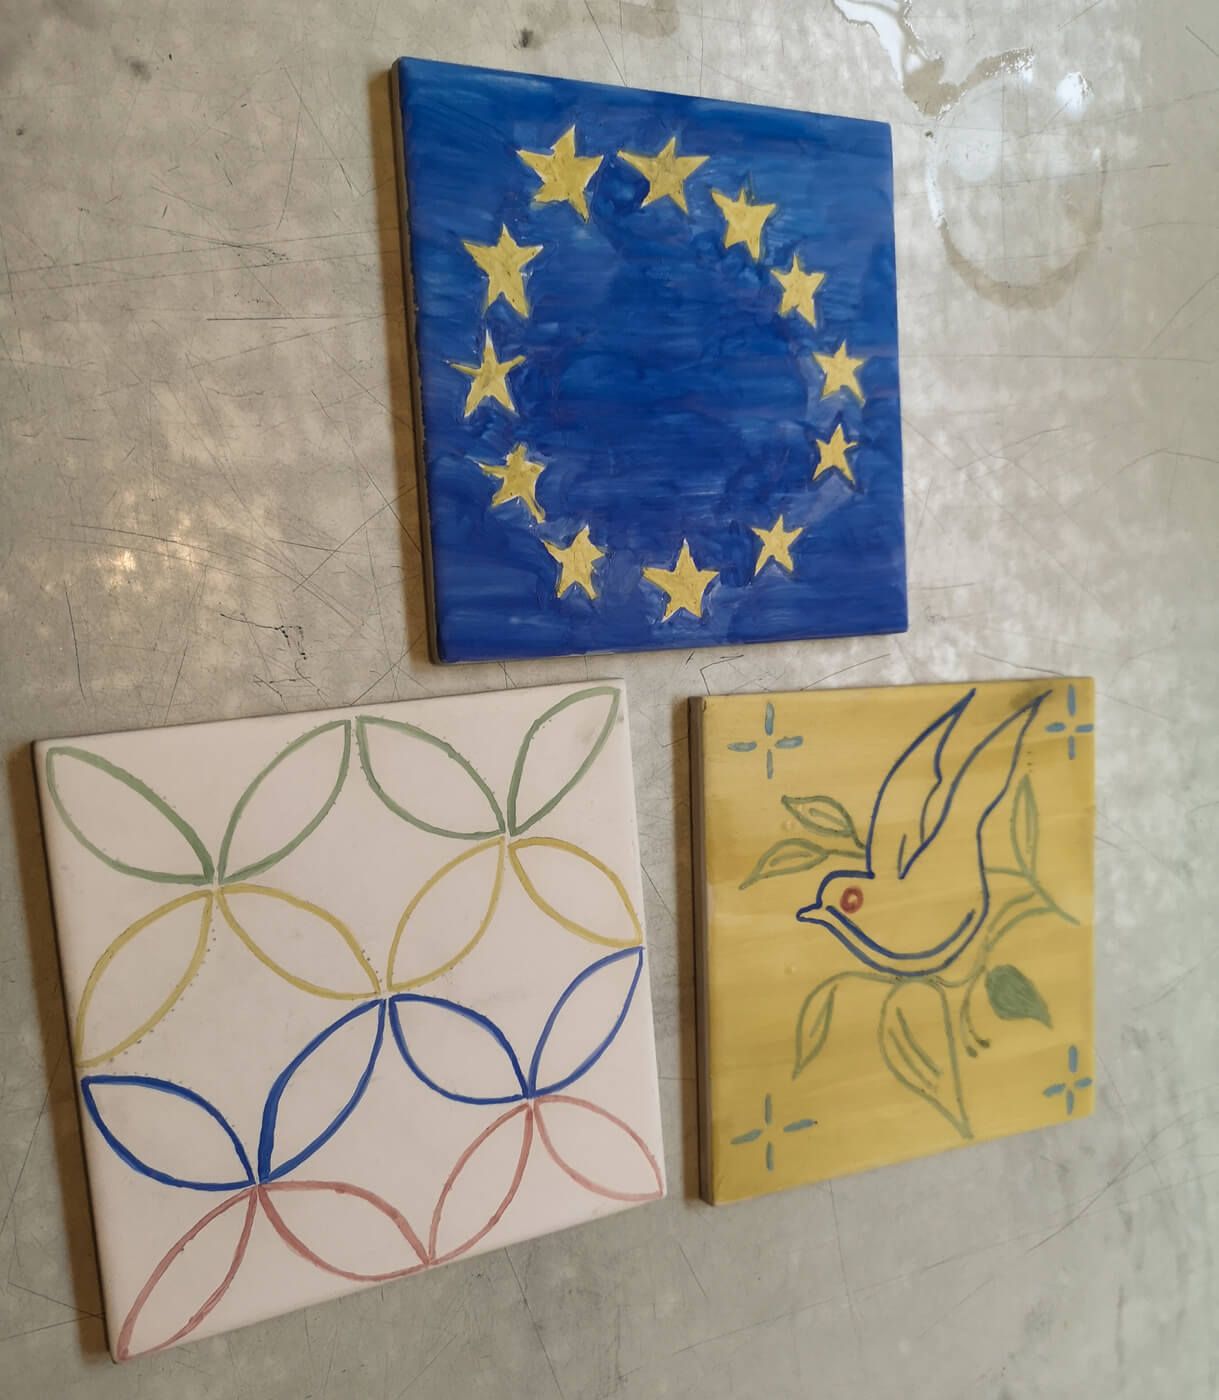 Three decorated tiles made by Emma, Allan and John at National Tile Museum in Lisbon